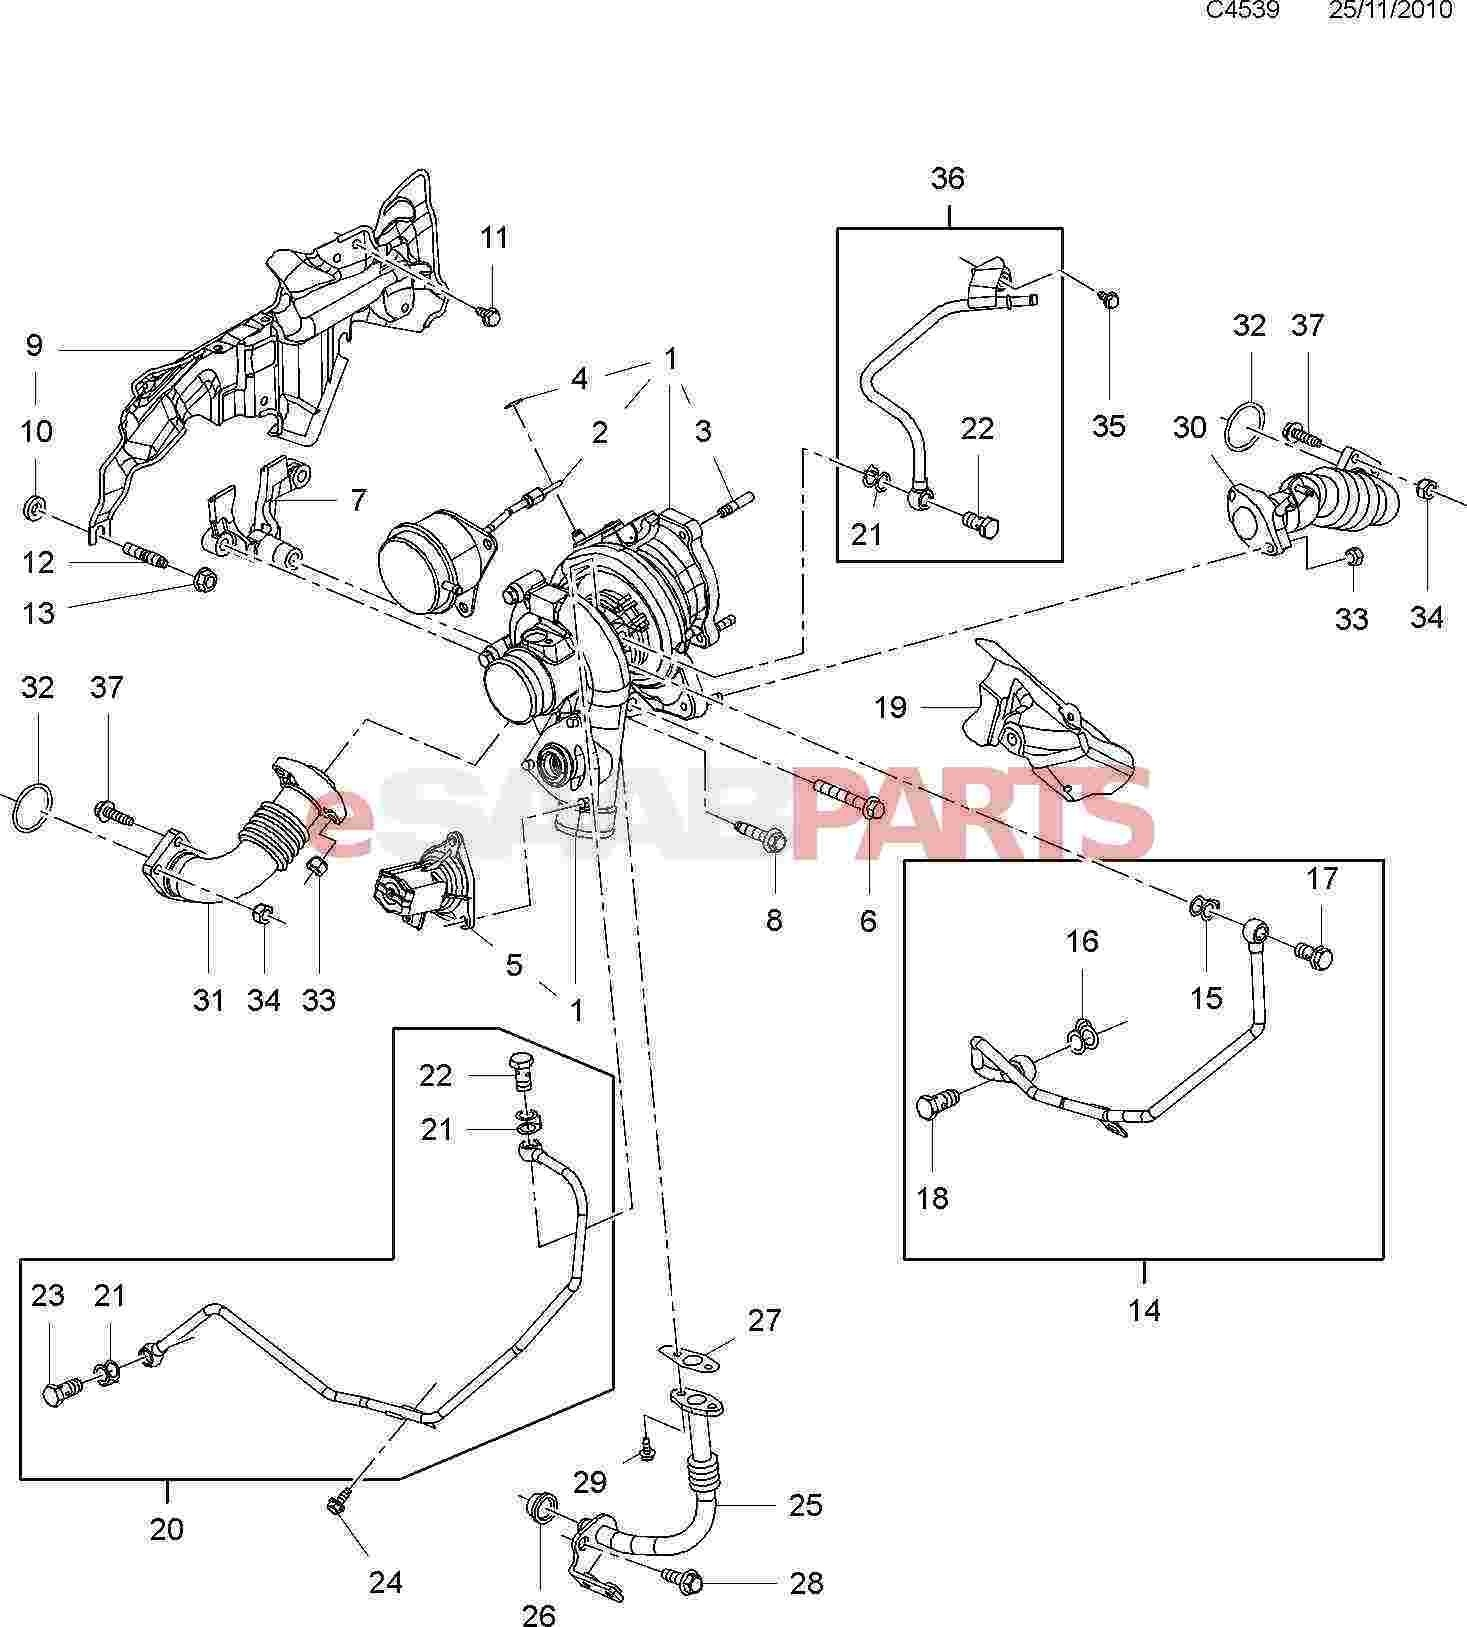 Ford 2 3 Engine Diagram Saab 9 5 Engine Diagram 2 2 ] Saab Nut Hfh 10—1 5 Thd 9 8 Thk 21 8 Of Ford 2 3 Engine Diagram 2008 Mazda 3 Engine Diagram Diagram Mazda 6 Engine Diagram – My